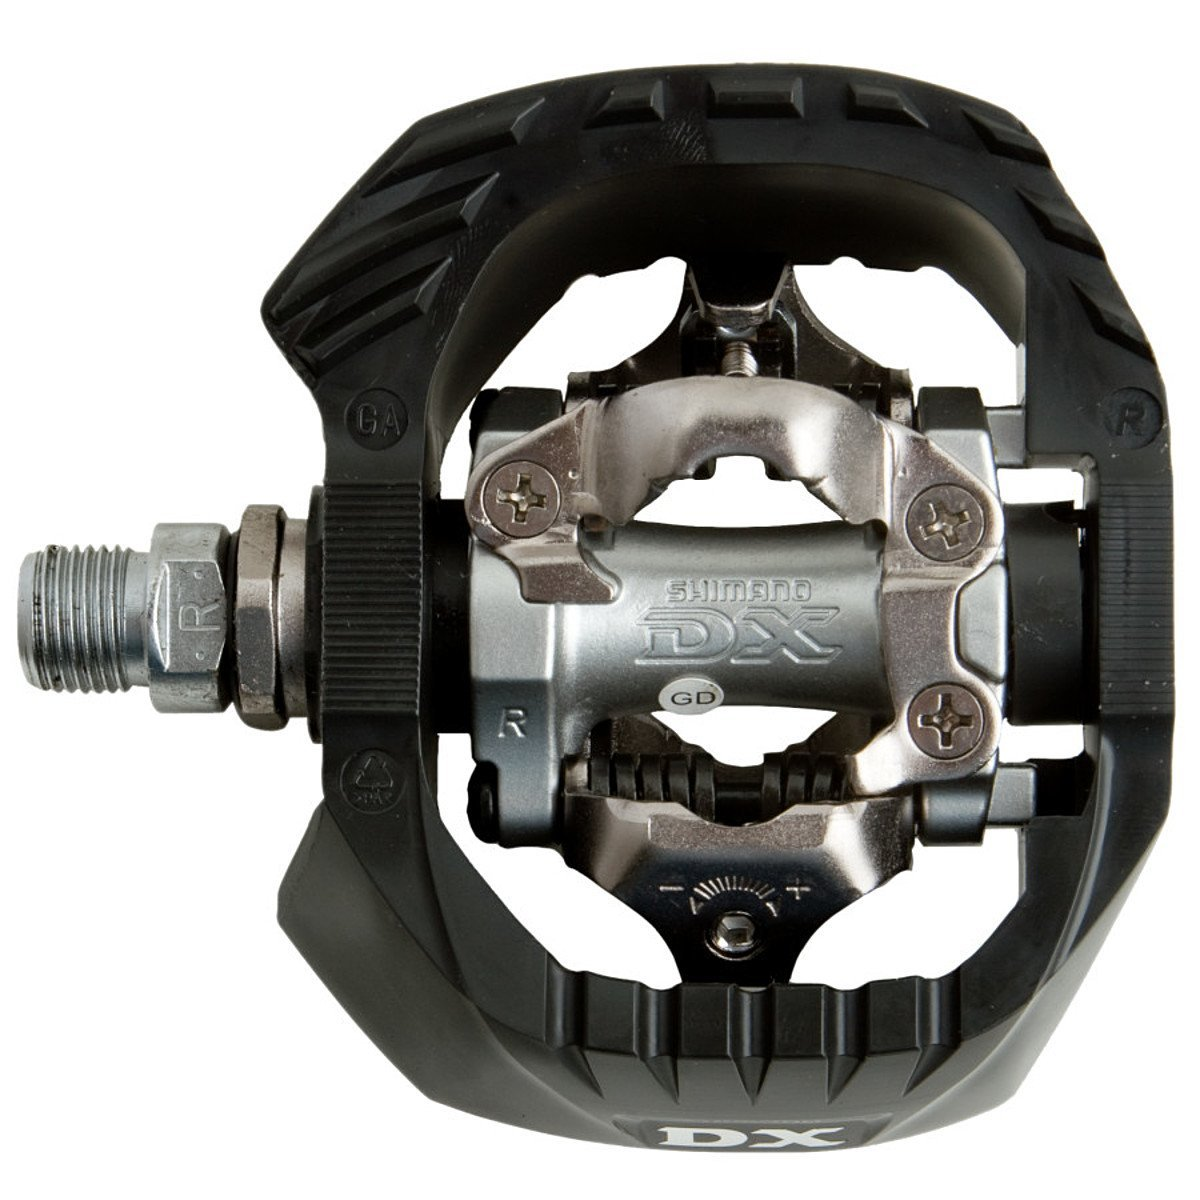 1e933239add Cheap Pd A530 Pedal, find Pd A530 Pedal deals on line at Alibaba.com